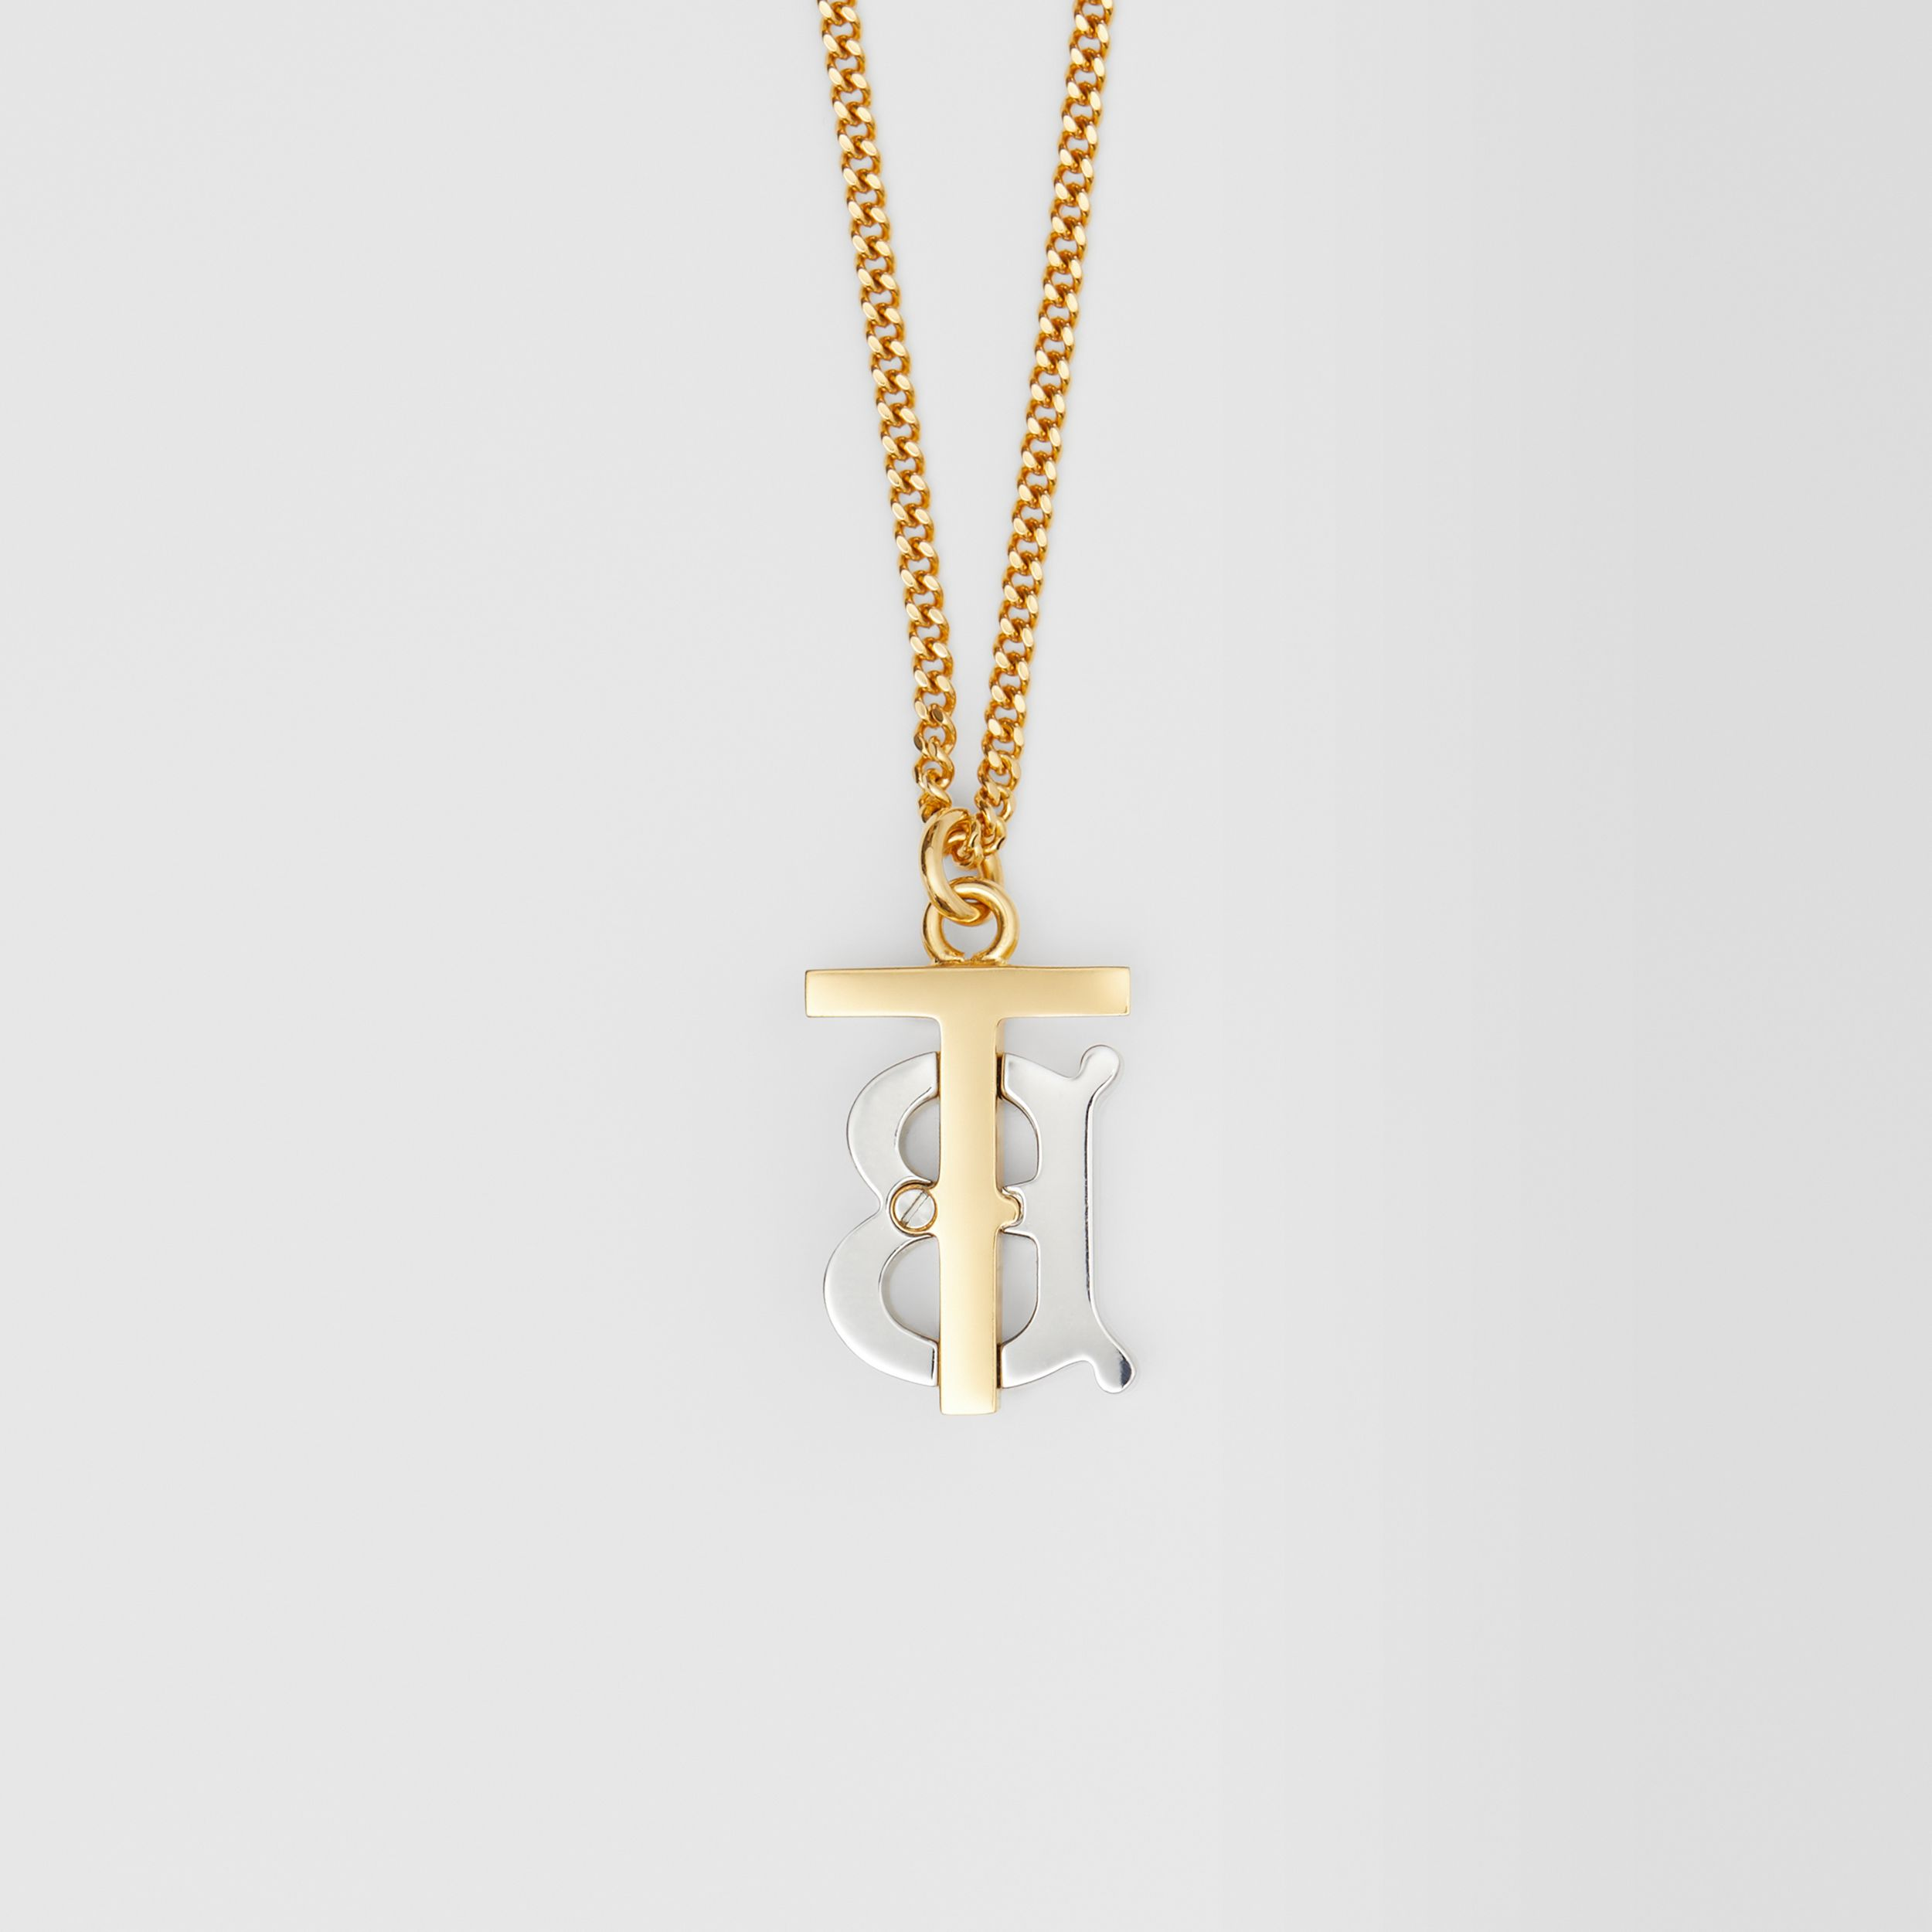 Gold and Palladium-plated Monogram Motif Necklace in Light Gold/palladium - Women | Burberry Hong Kong S.A.R. - 4